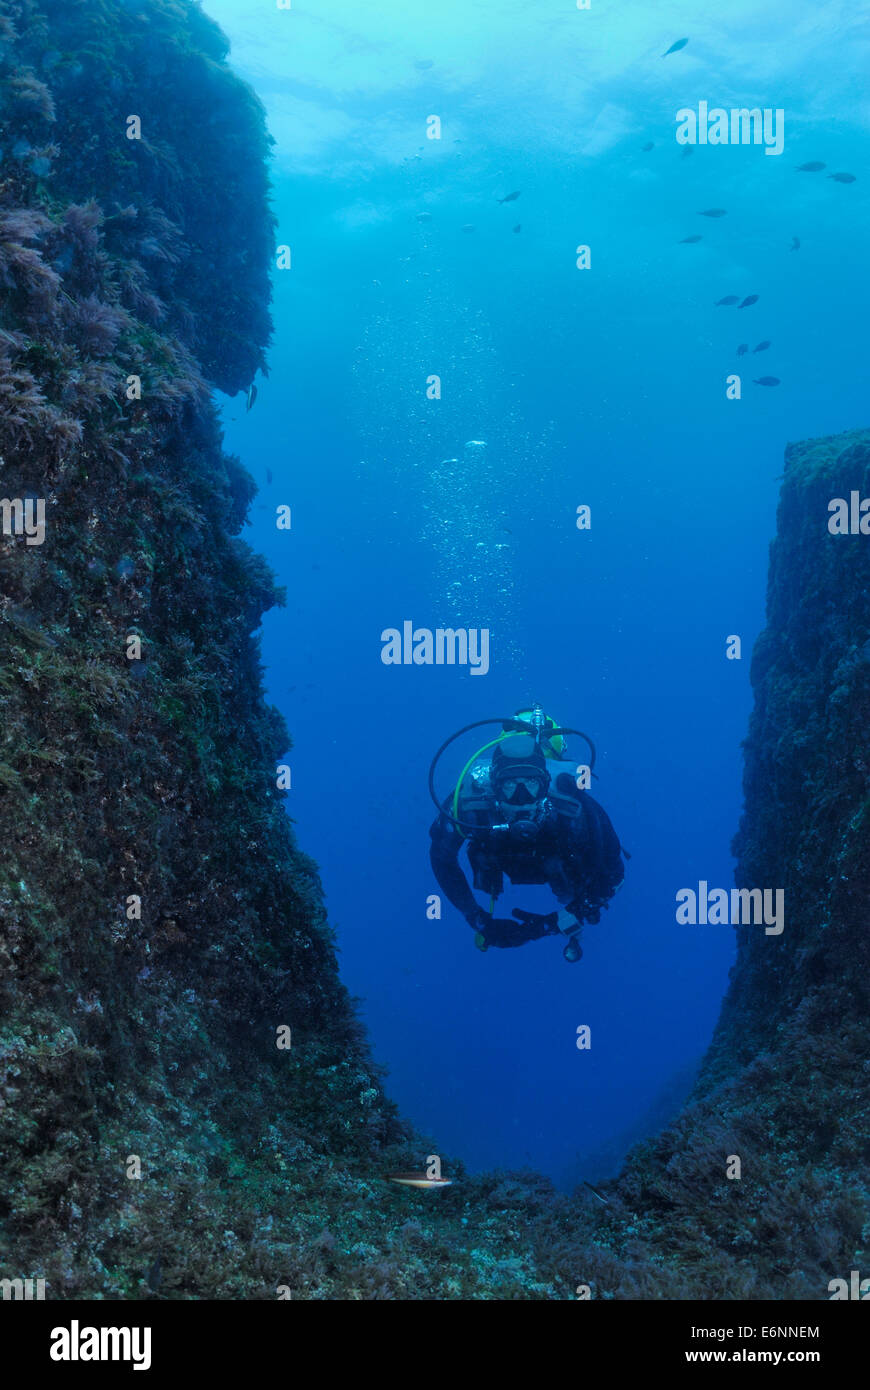 Scuba diver swimming by underwater rock formation, Mediterranean Sea, France, Europe - Stock Image